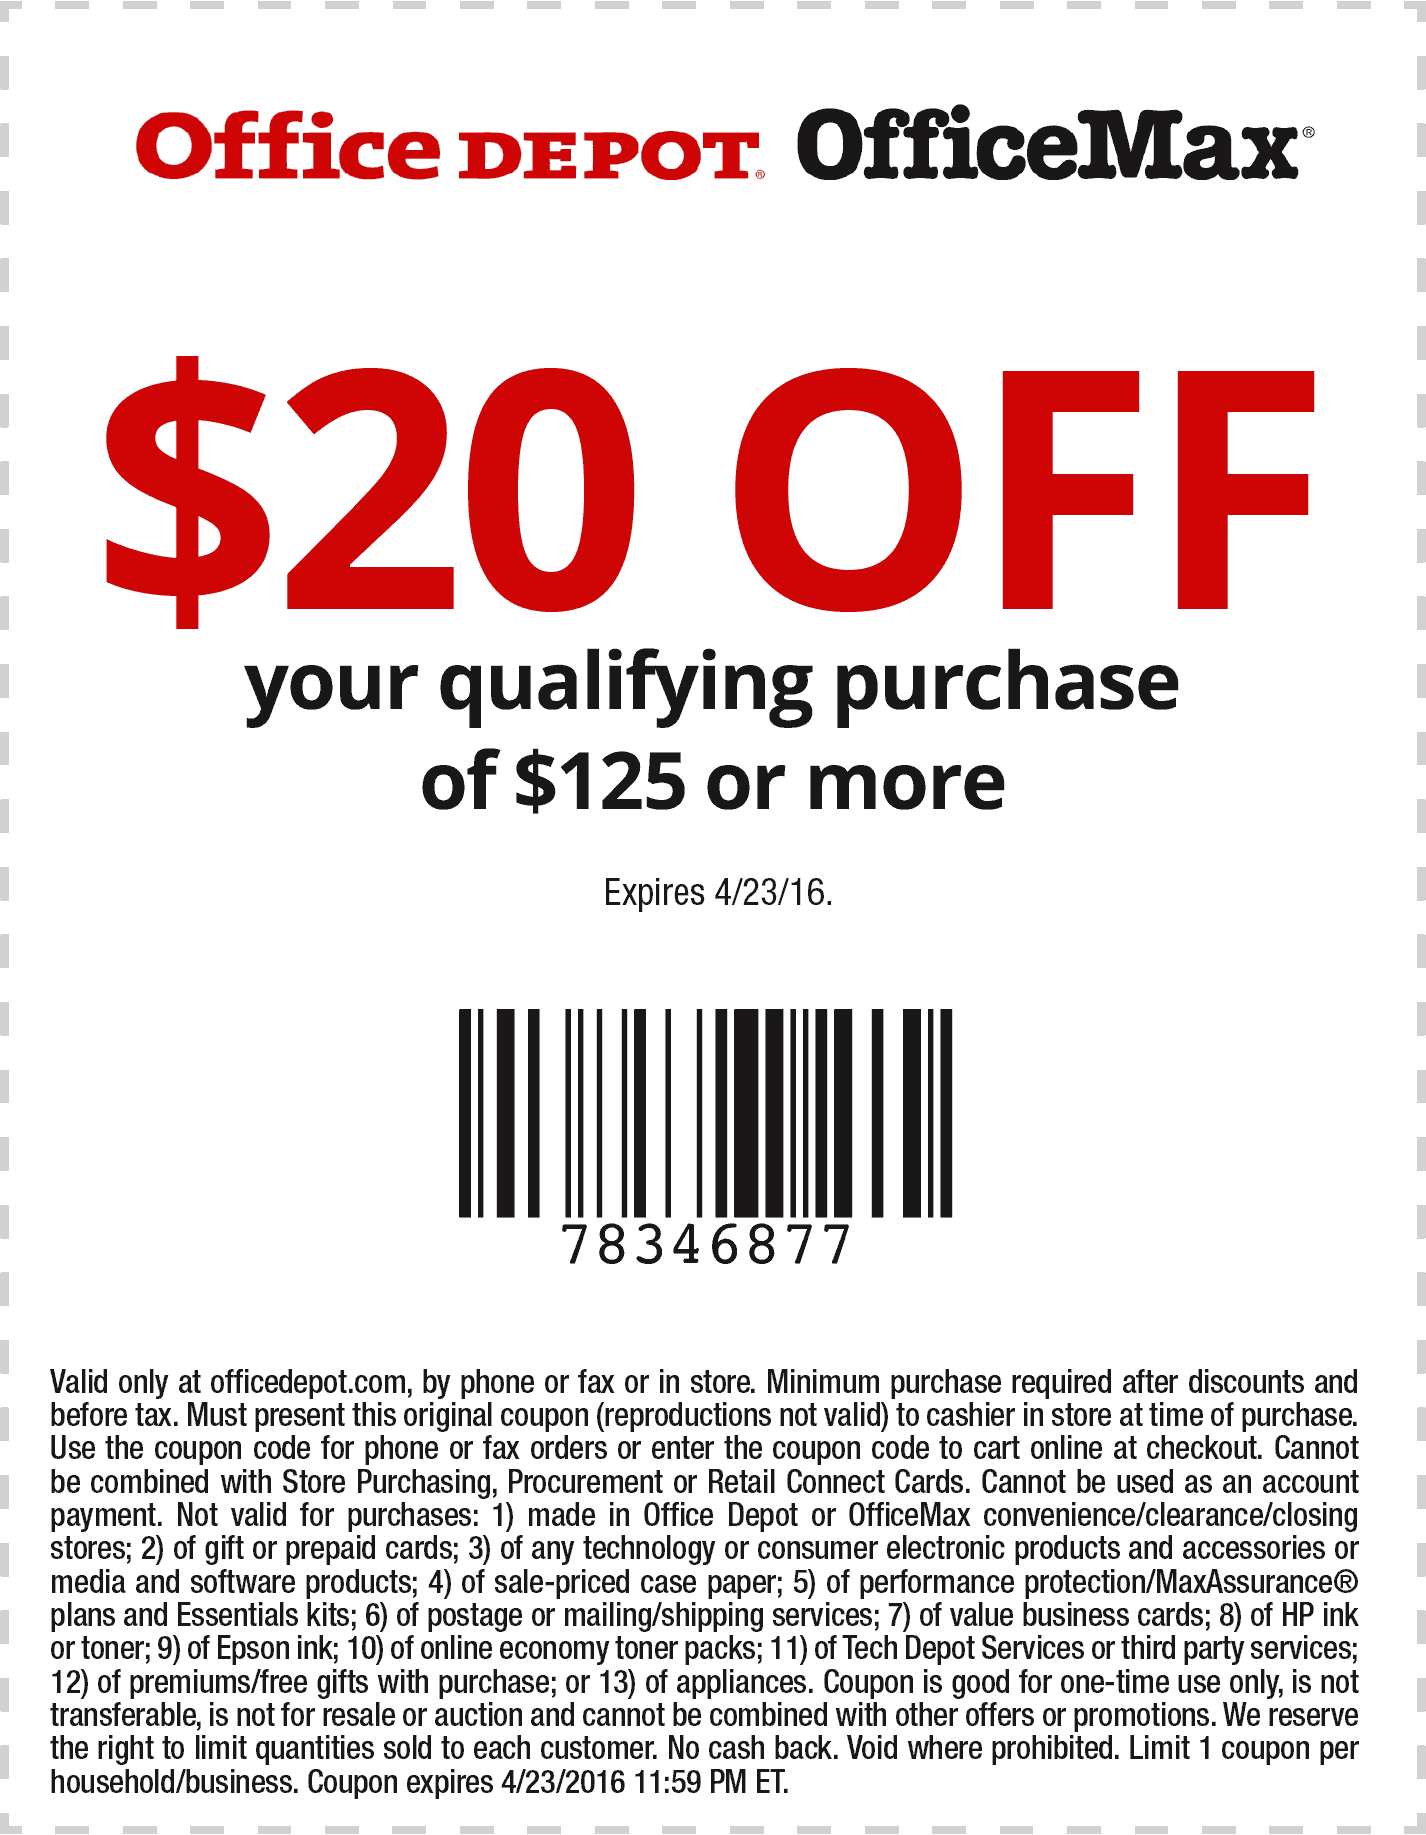 Office Depot Coupon May 2018 $20 off $125 at Office Depot & OfficeMax, or online via promo code 78346877